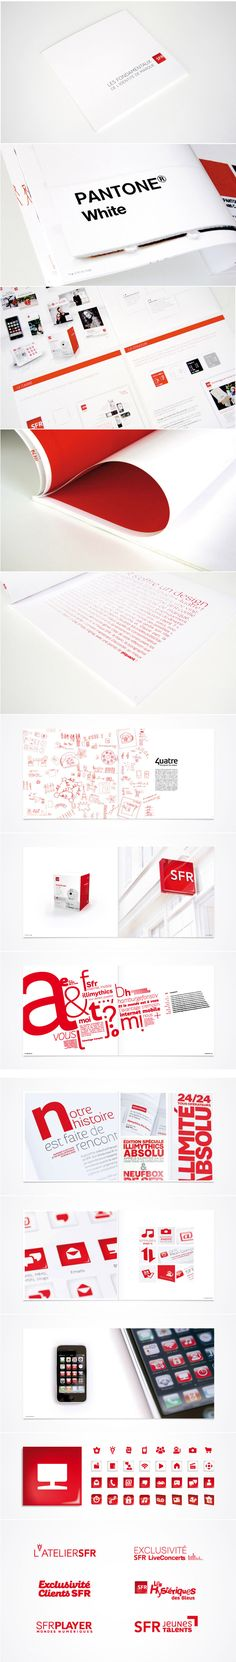 Red & white. Mucho white space. Bold